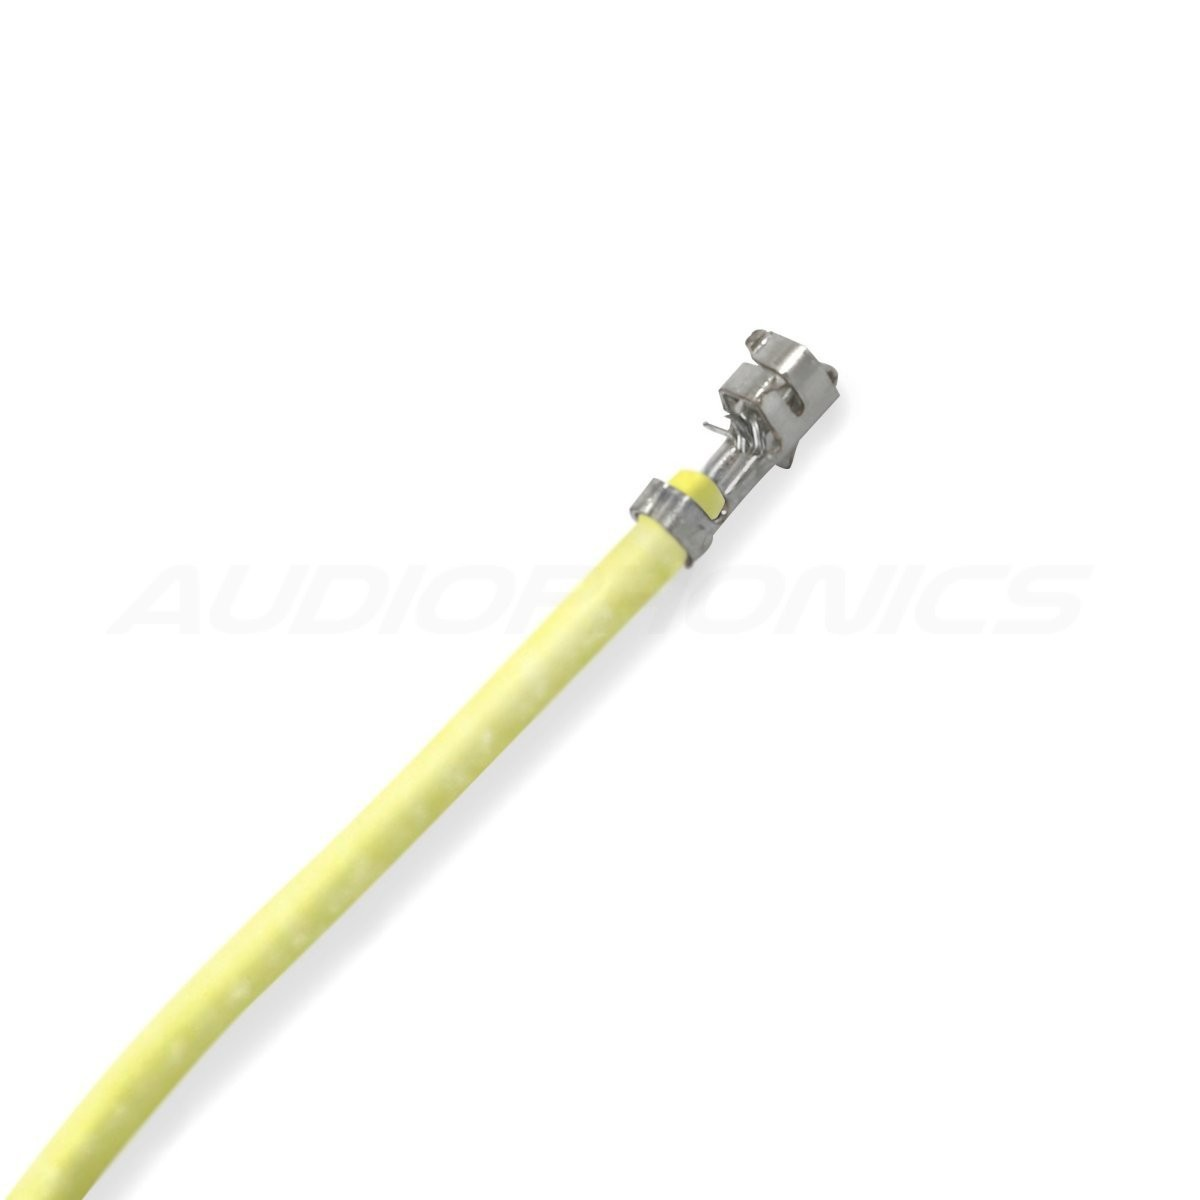 XH 2.54mm Female / Female Cable 1 Poles No Casing Yellow 15cm (x10)